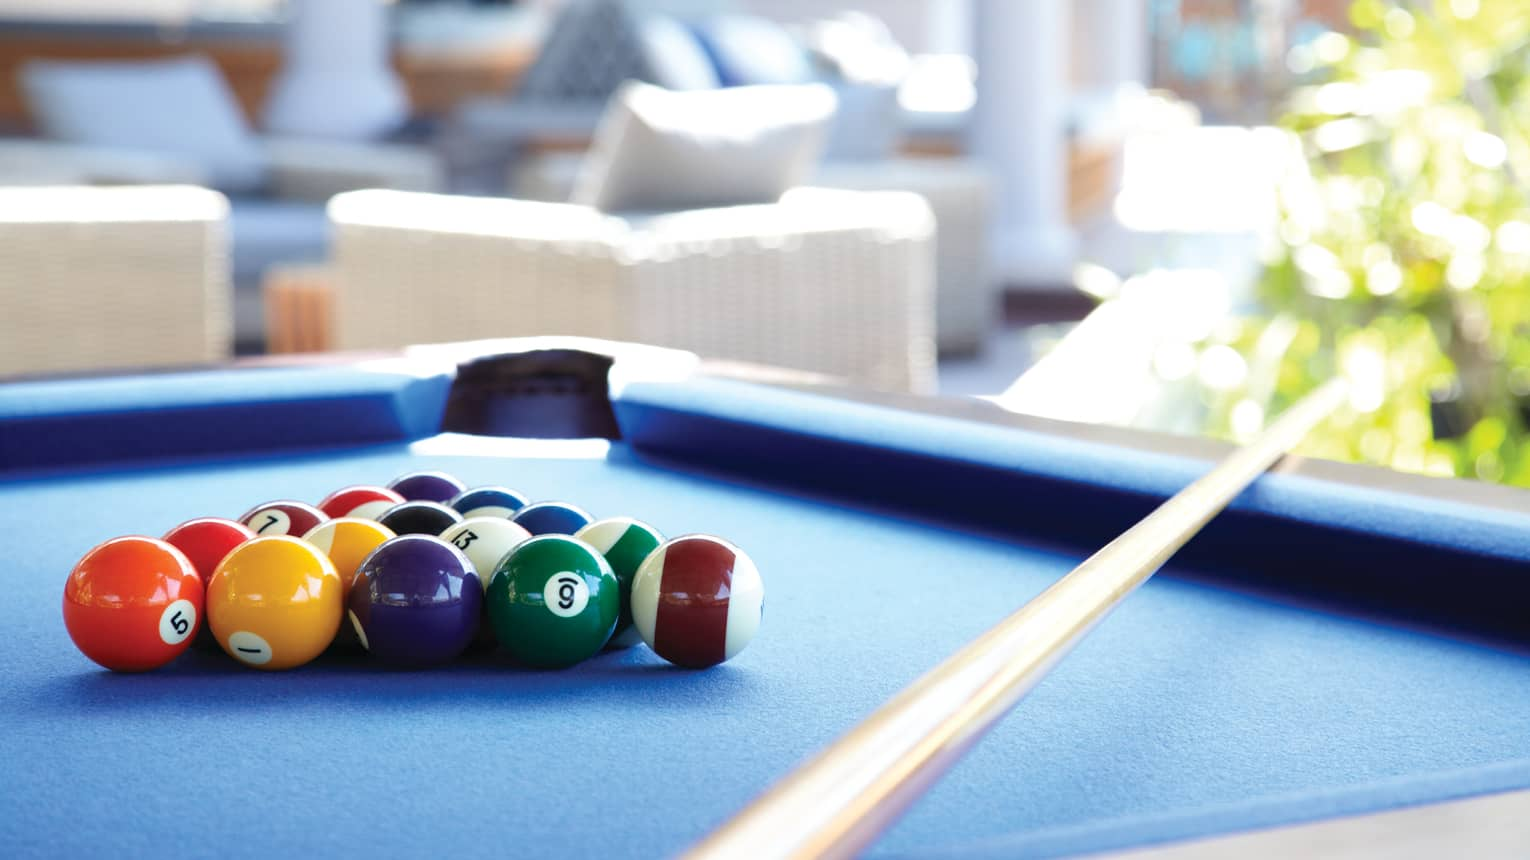 Billiards balls gathered in triangle on pool blue table, cue resting on corner